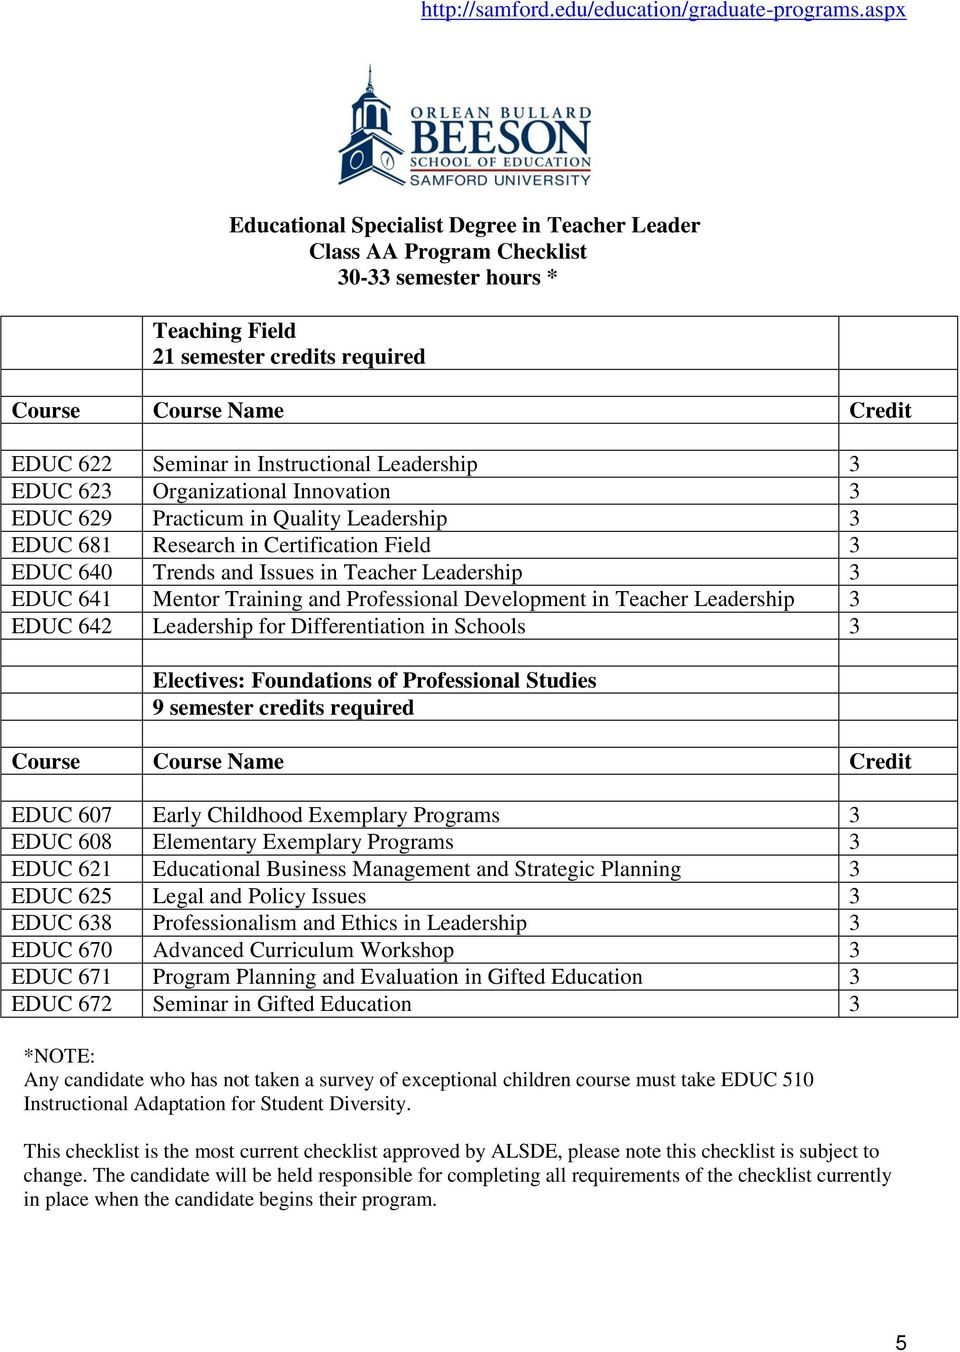 3 EDUC 641 Mentor Training and Professional Development in Teacher Leadership 3 EDUC 642 Leadership for Differentiation in Schools 3 Electives: Foundations of Professional Studies 9 semester credits